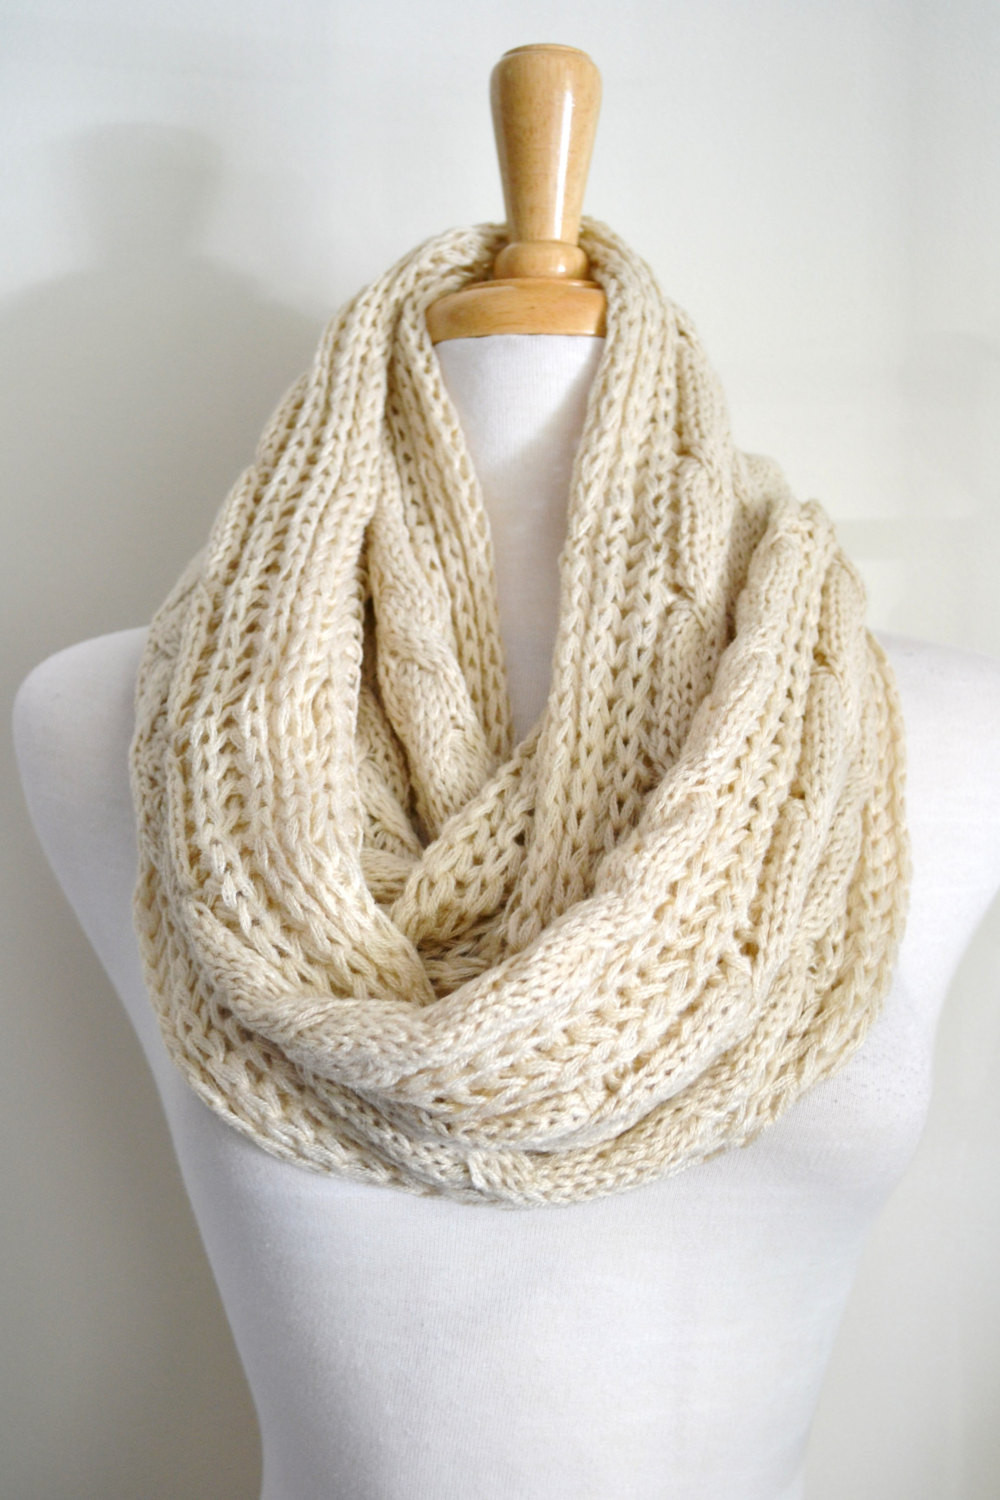 Inspirational Oatmeal Creme Beige Cable Knit Infinity Loop Scarf Snood Cable Knit Scarf Of Delightful 48 Ideas Cable Knit Scarf